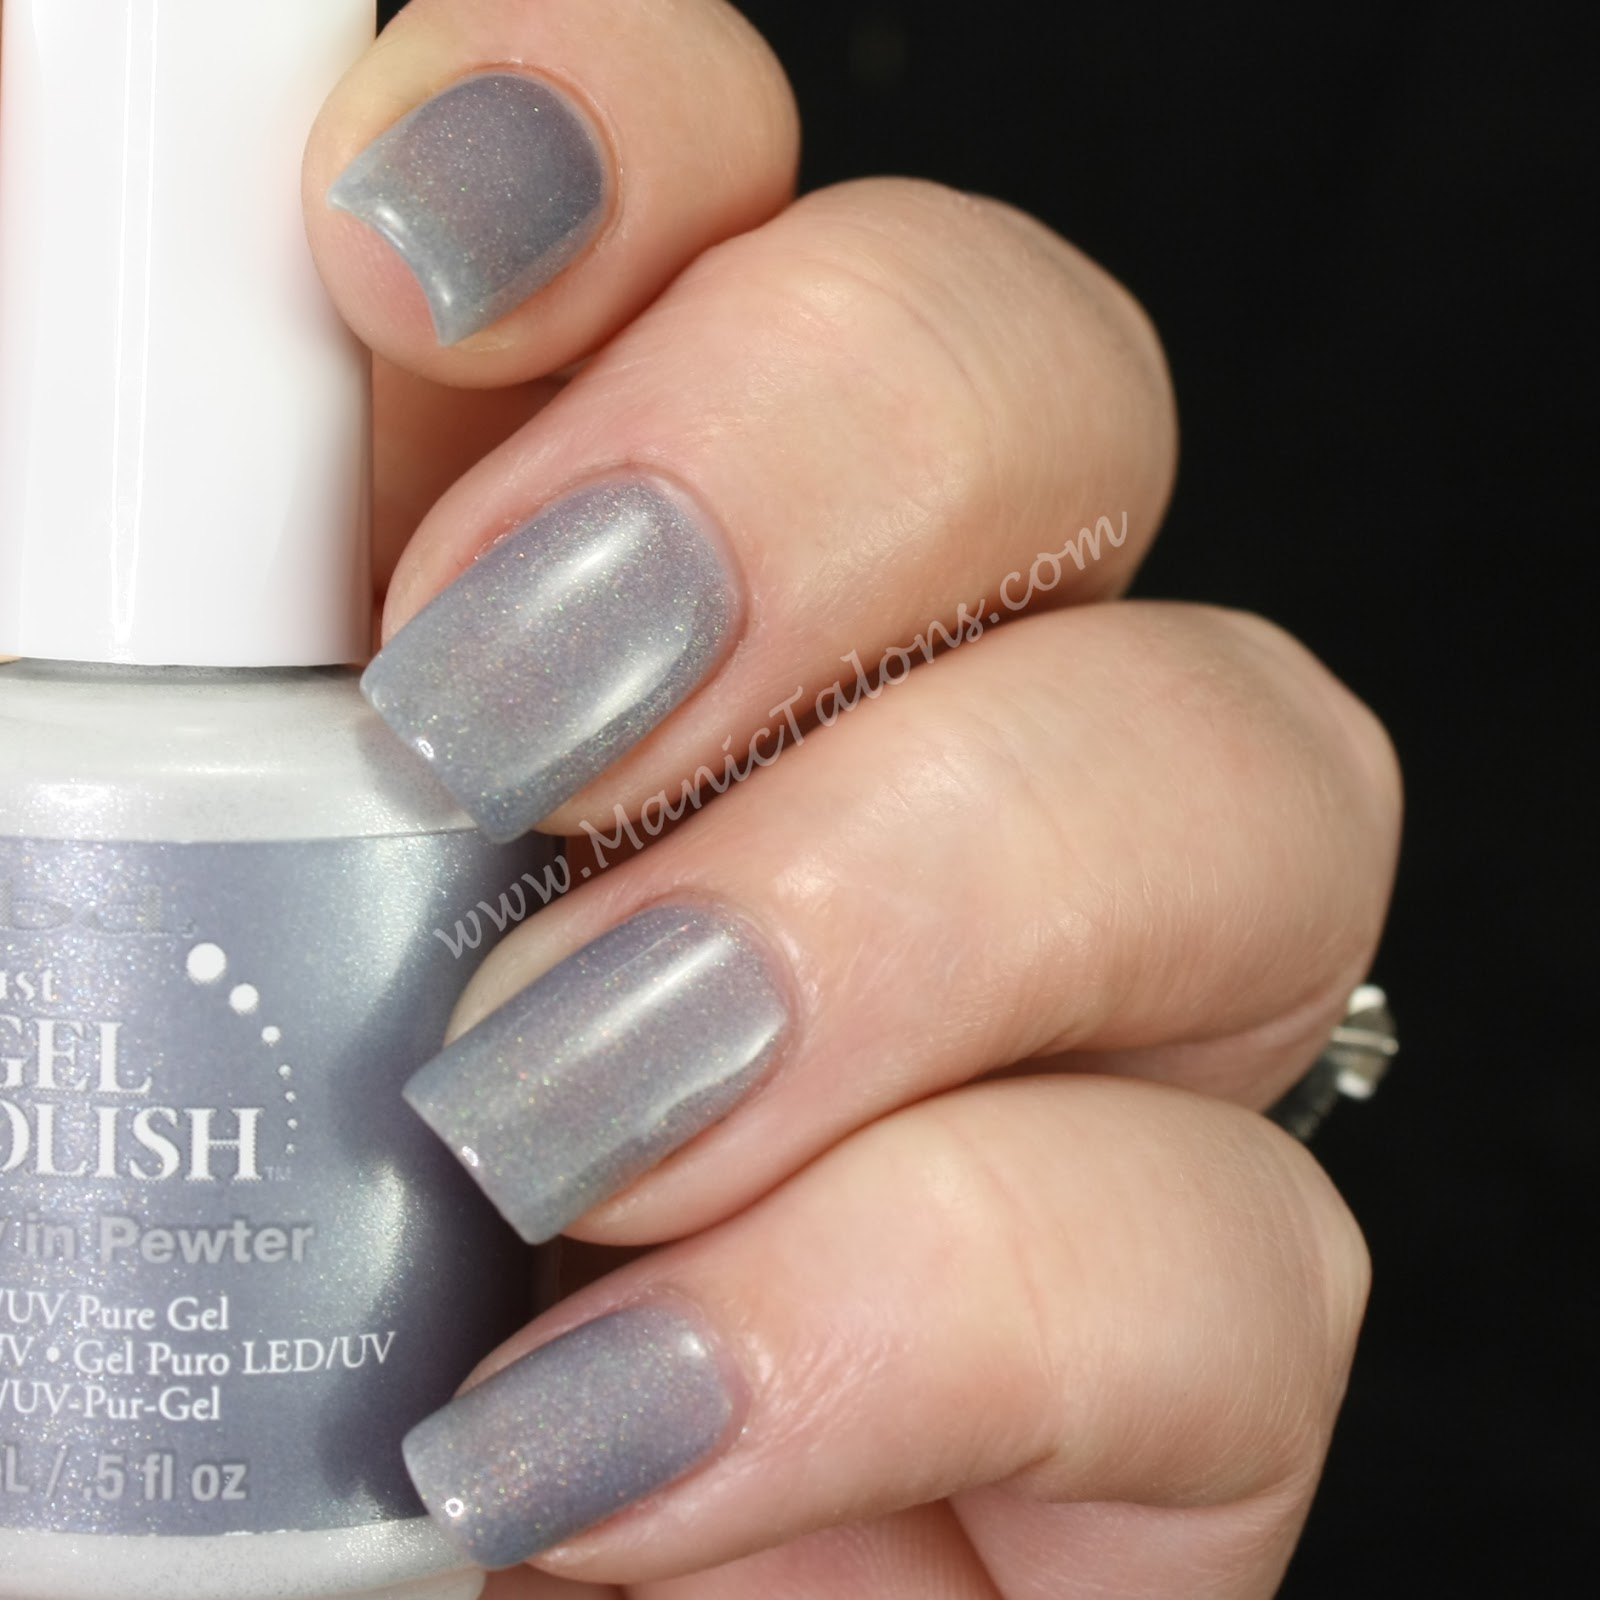 IBD Just Gel Pretty in Pewter Swatch